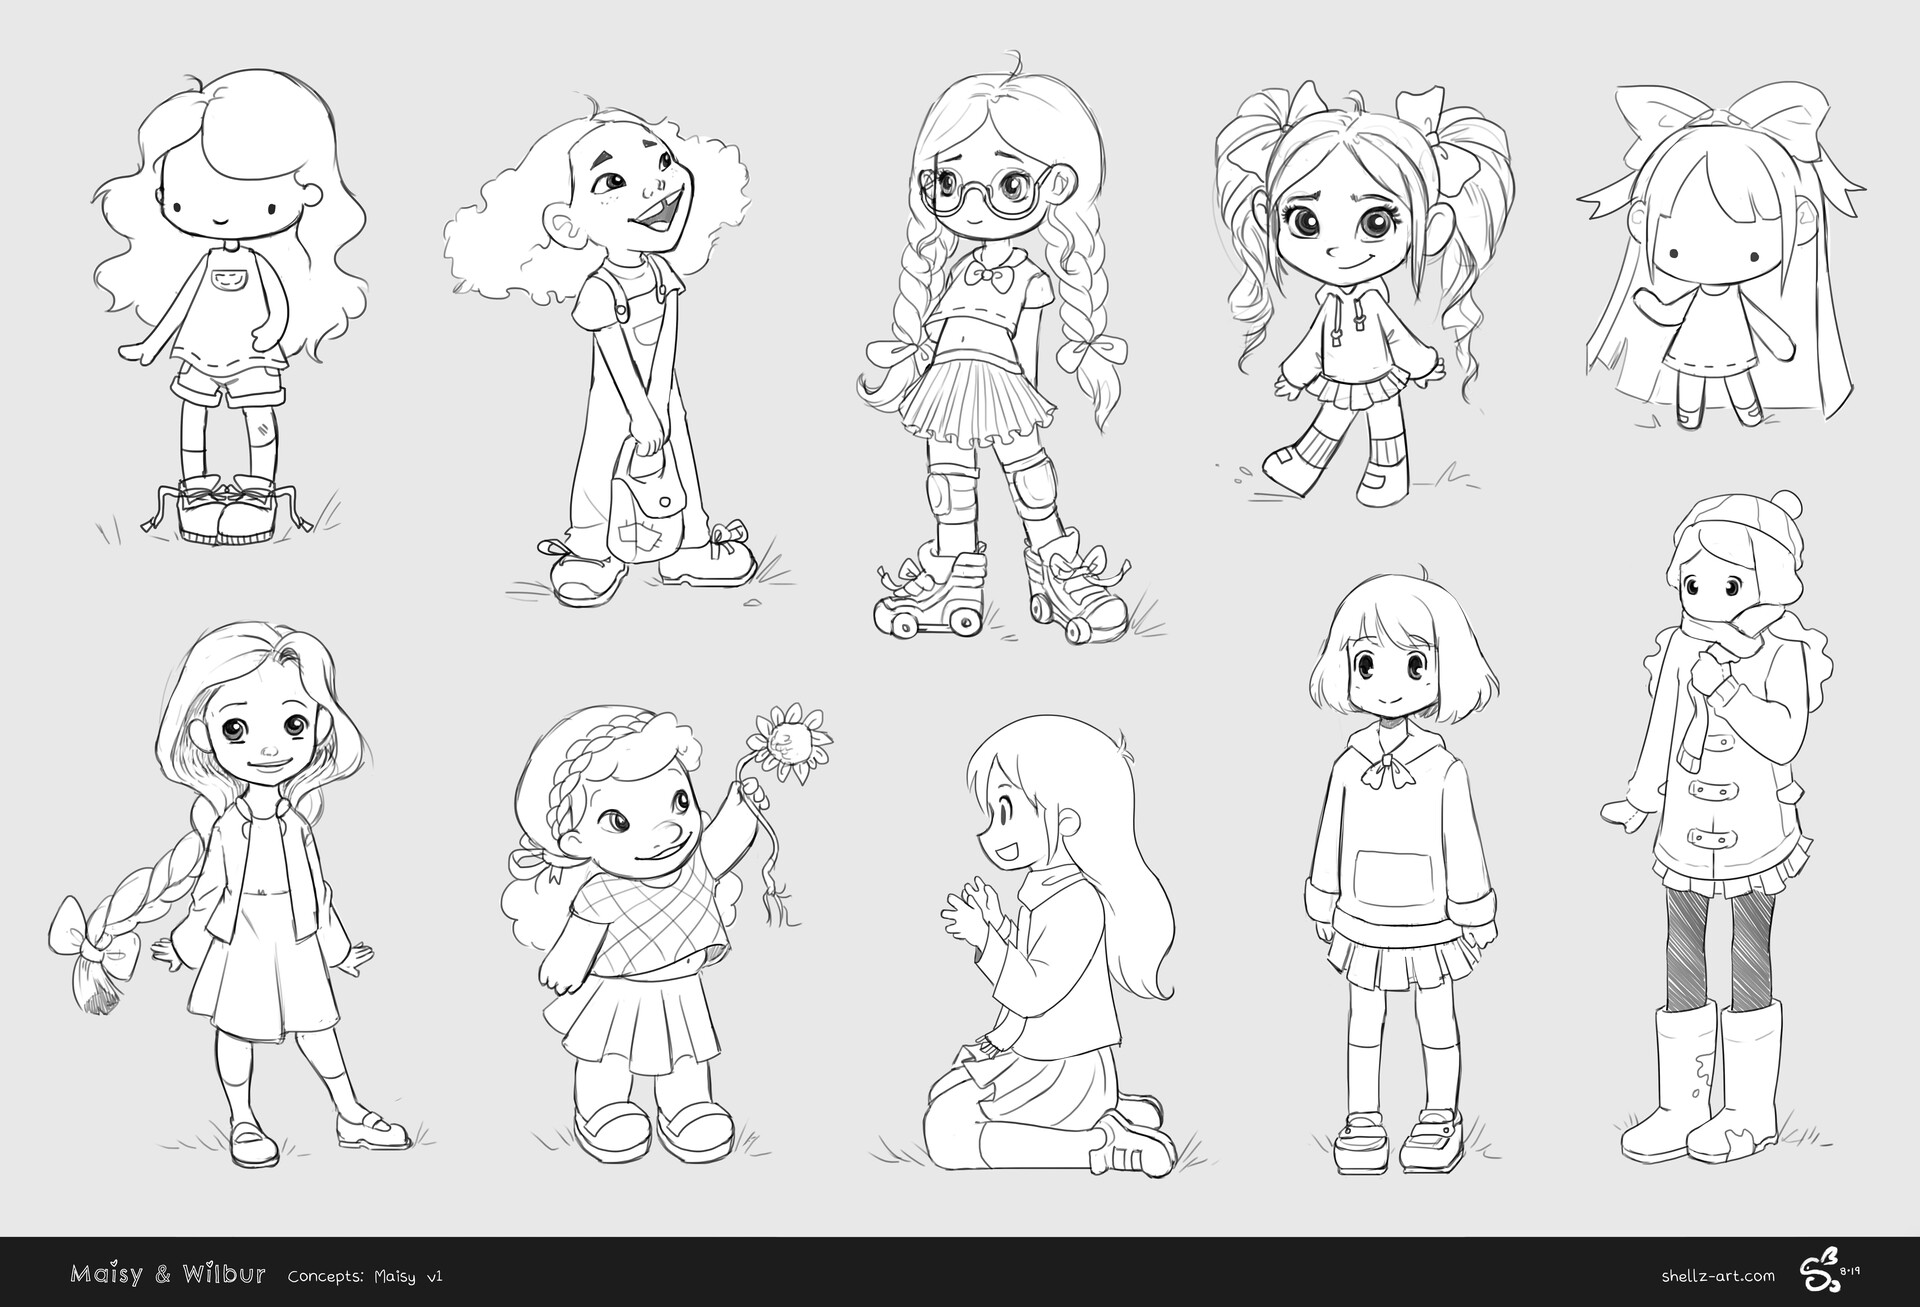 Initial concepts for Maisy